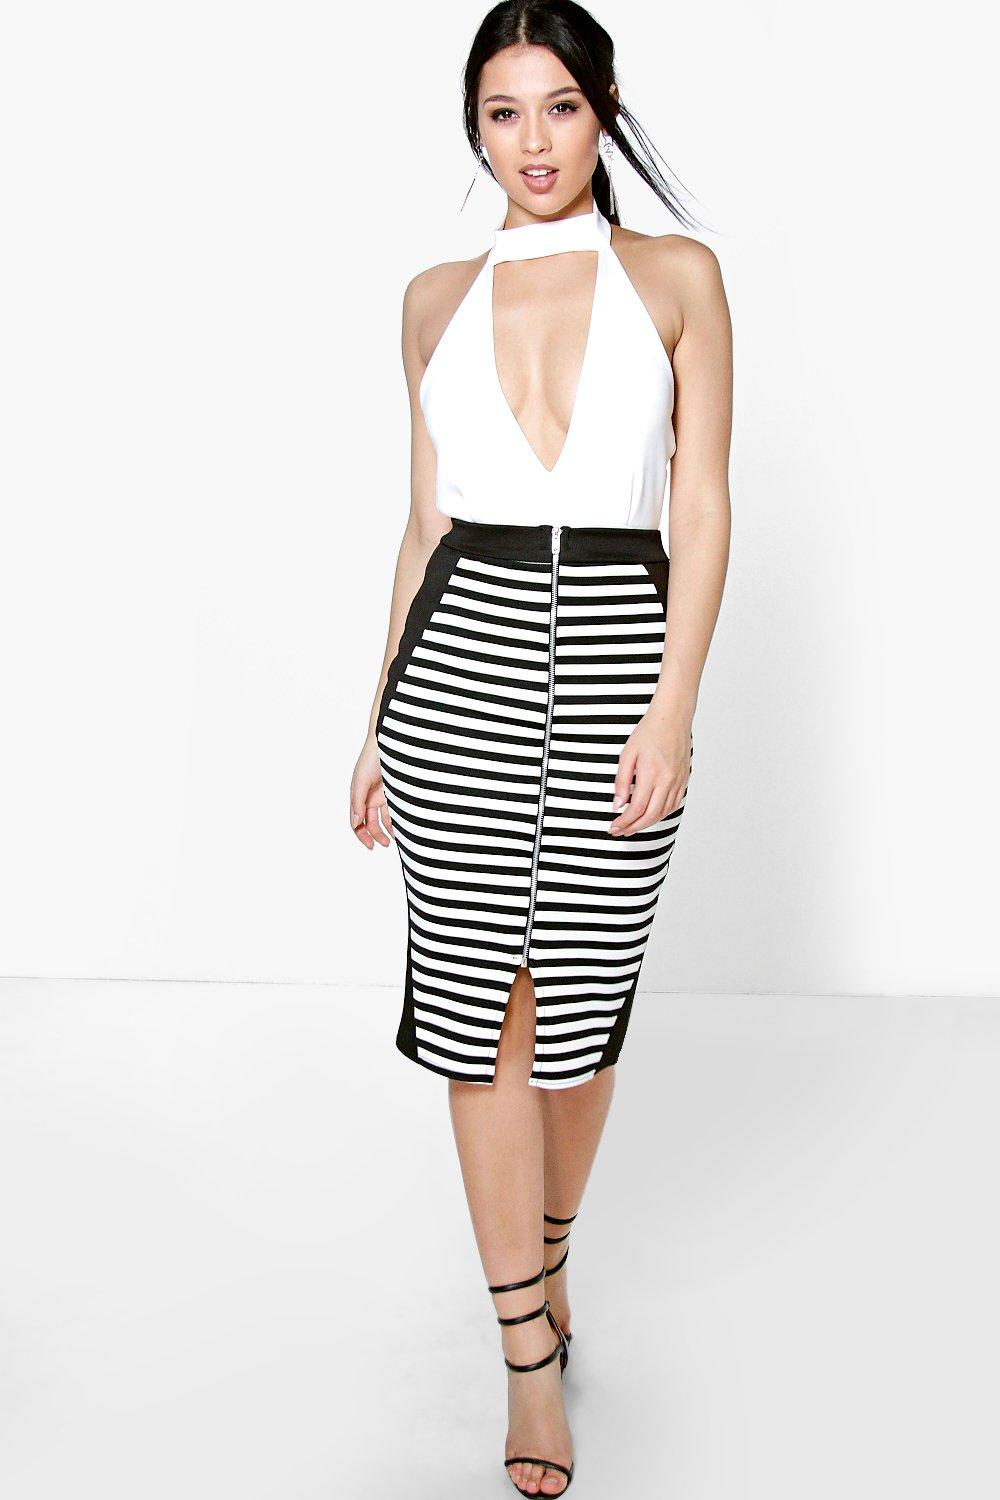 Zip Front Contrast Panel Long Line Midi Skirt - multi